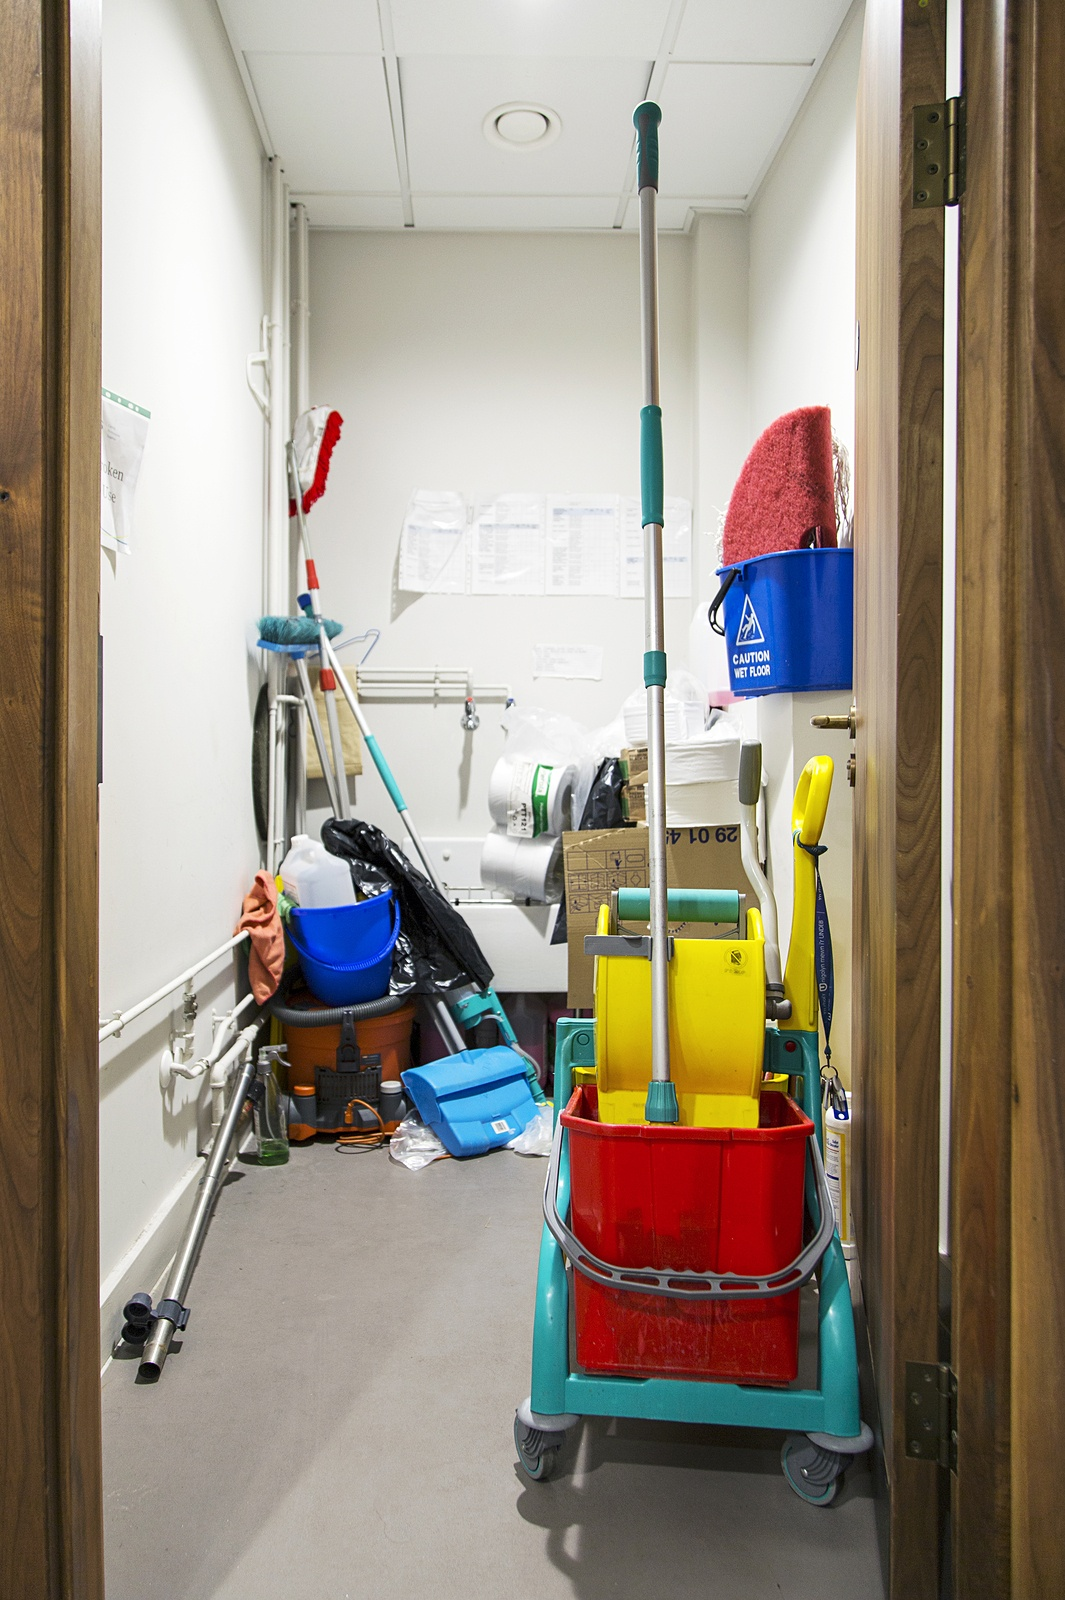 detroit janitorial company, janitorial services company, livonia cleaning companies, downriver commercial cleaning company